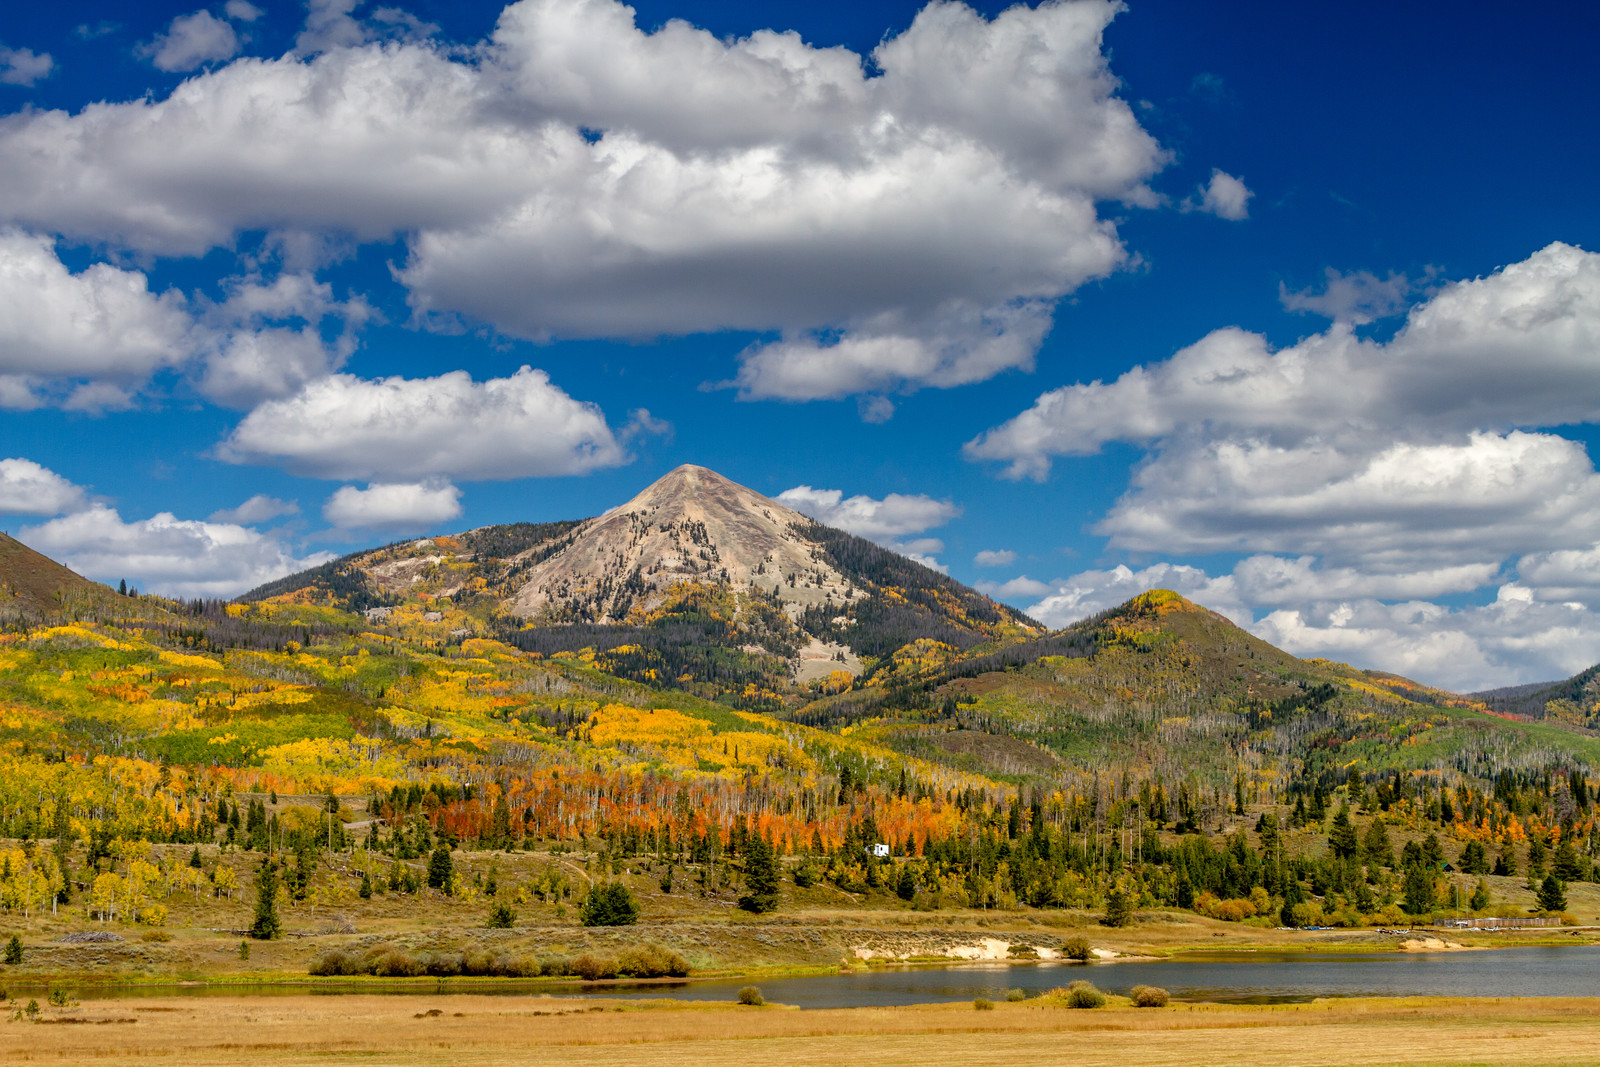 Hahn Mountain and Steamboat lake blue skies with puffy white clouds, the treats and landscape are brightly colored in yellows and oranges